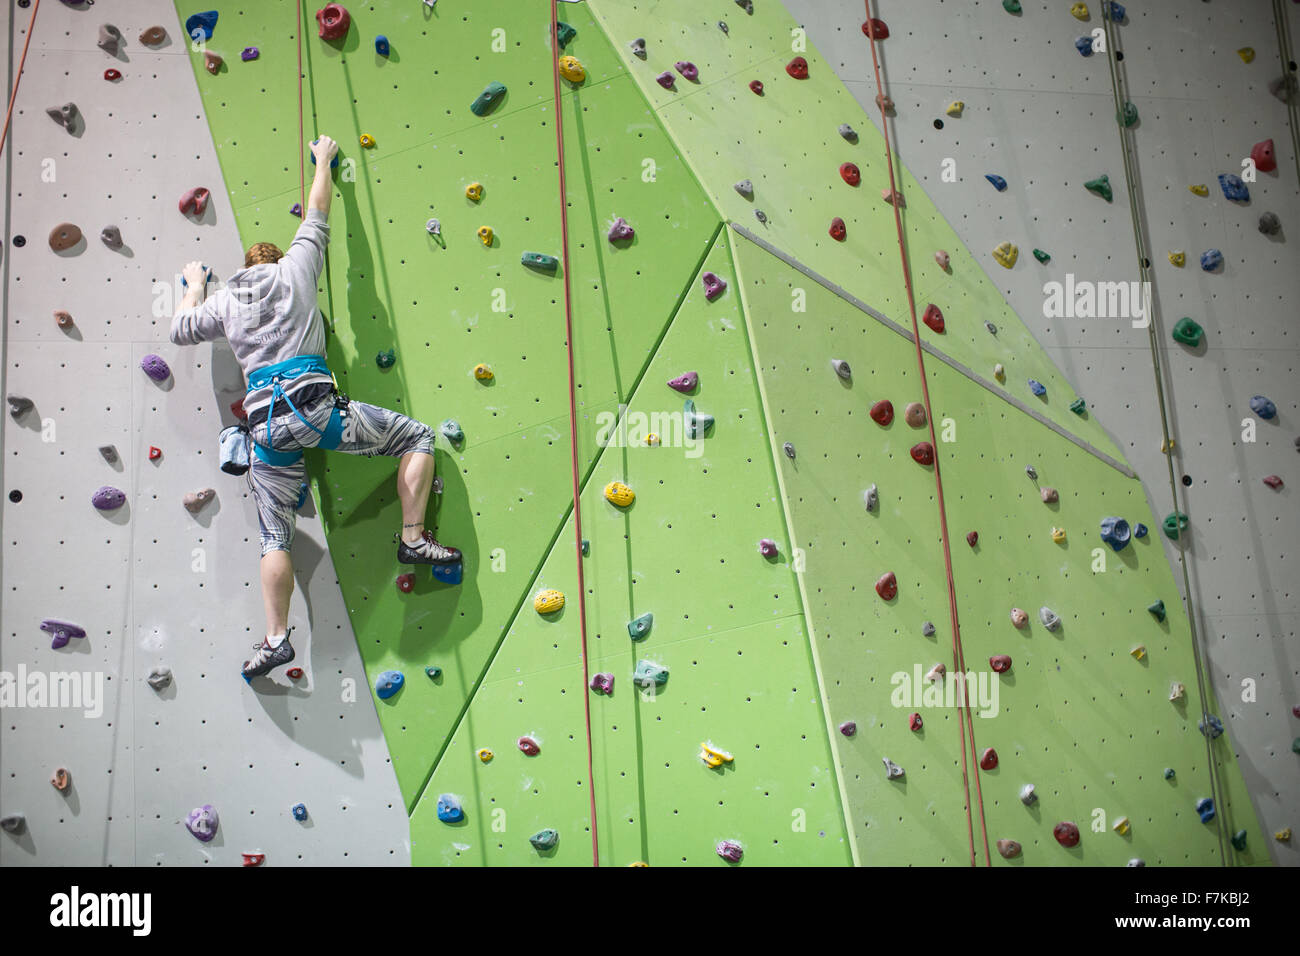 A female climber using an indoor climbing gym. - Stock Image